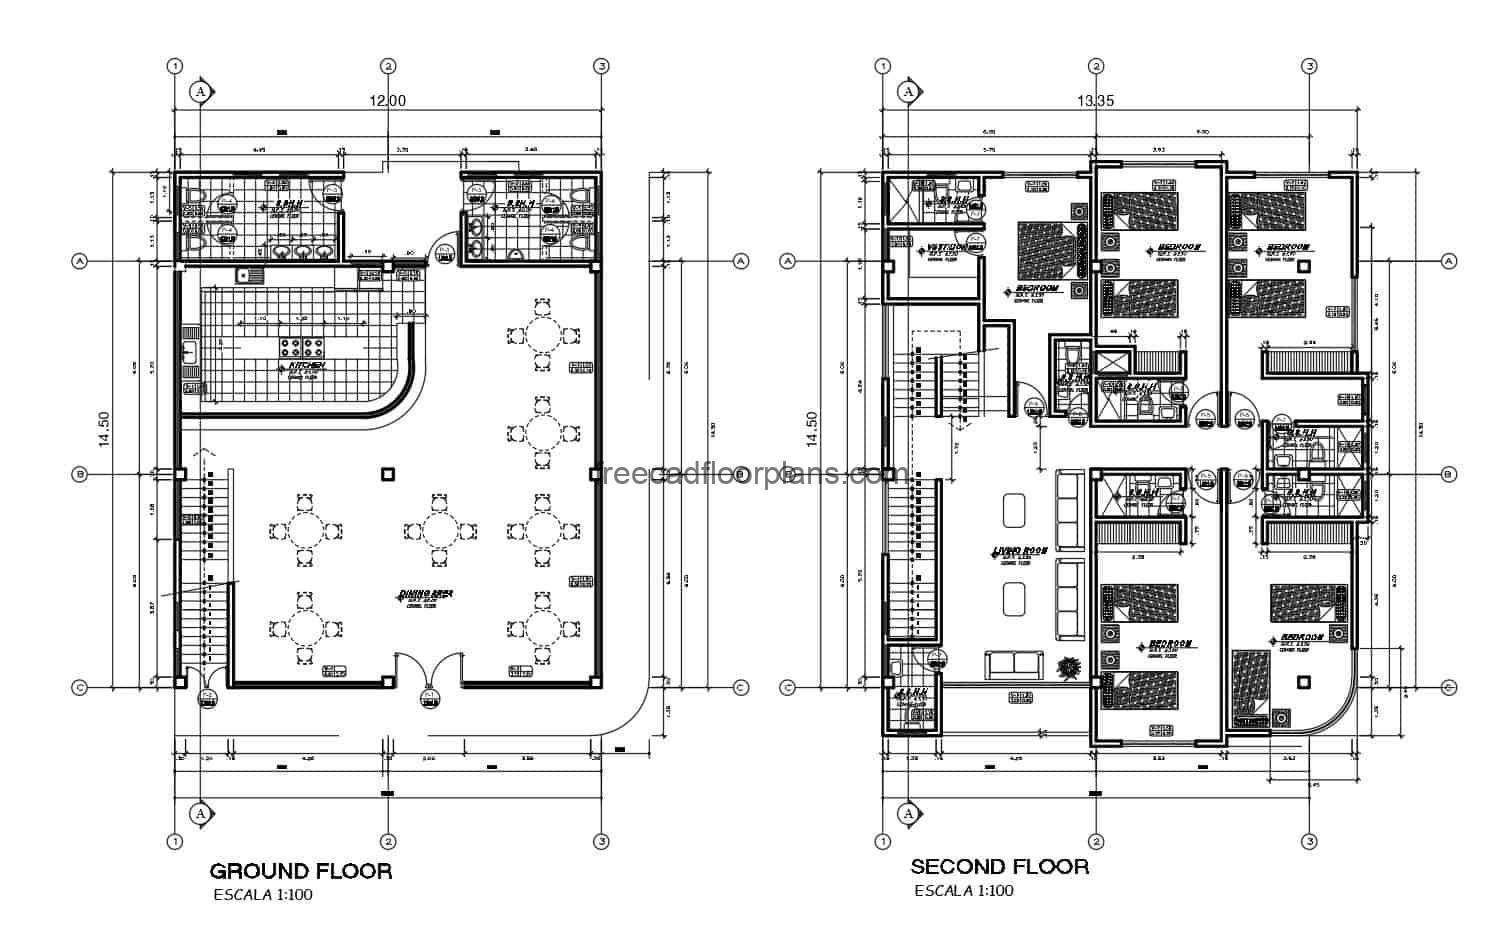 Mixed commercial-residential building, building with kitchen-restaurant on the first level and two upper levels with living quarters, plans with details and drawings in DWG format for downloading by e-mail